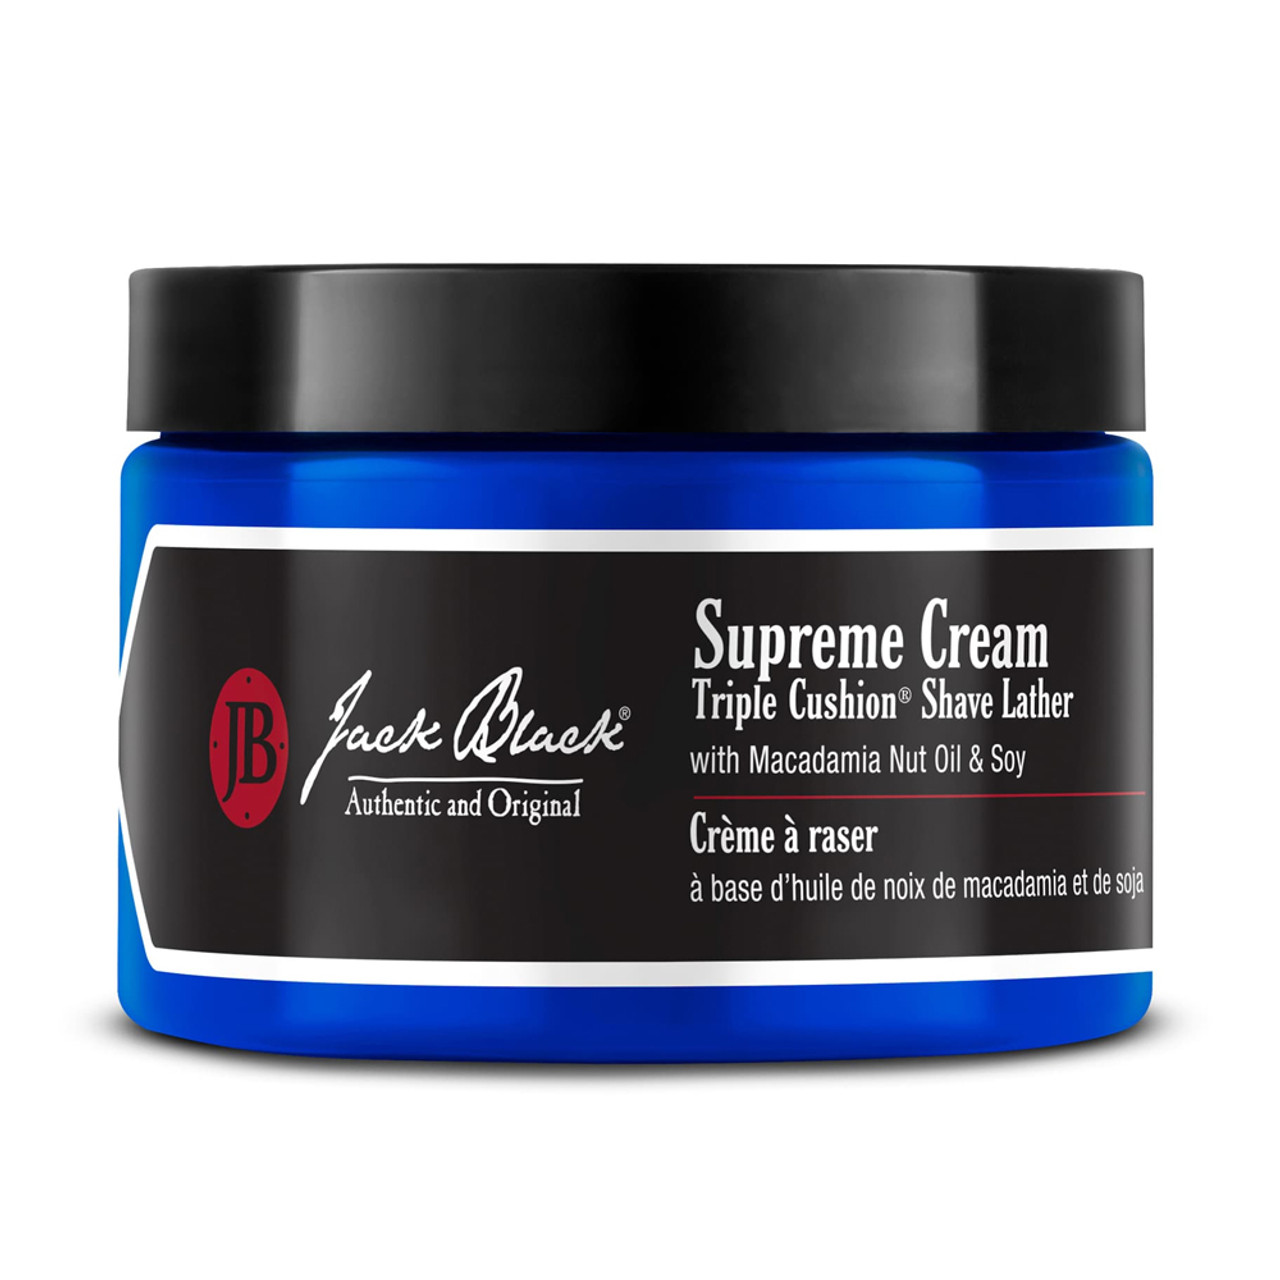 Jack Black Supreme Cream Triple Cushion Shave Lather 6.0 oz